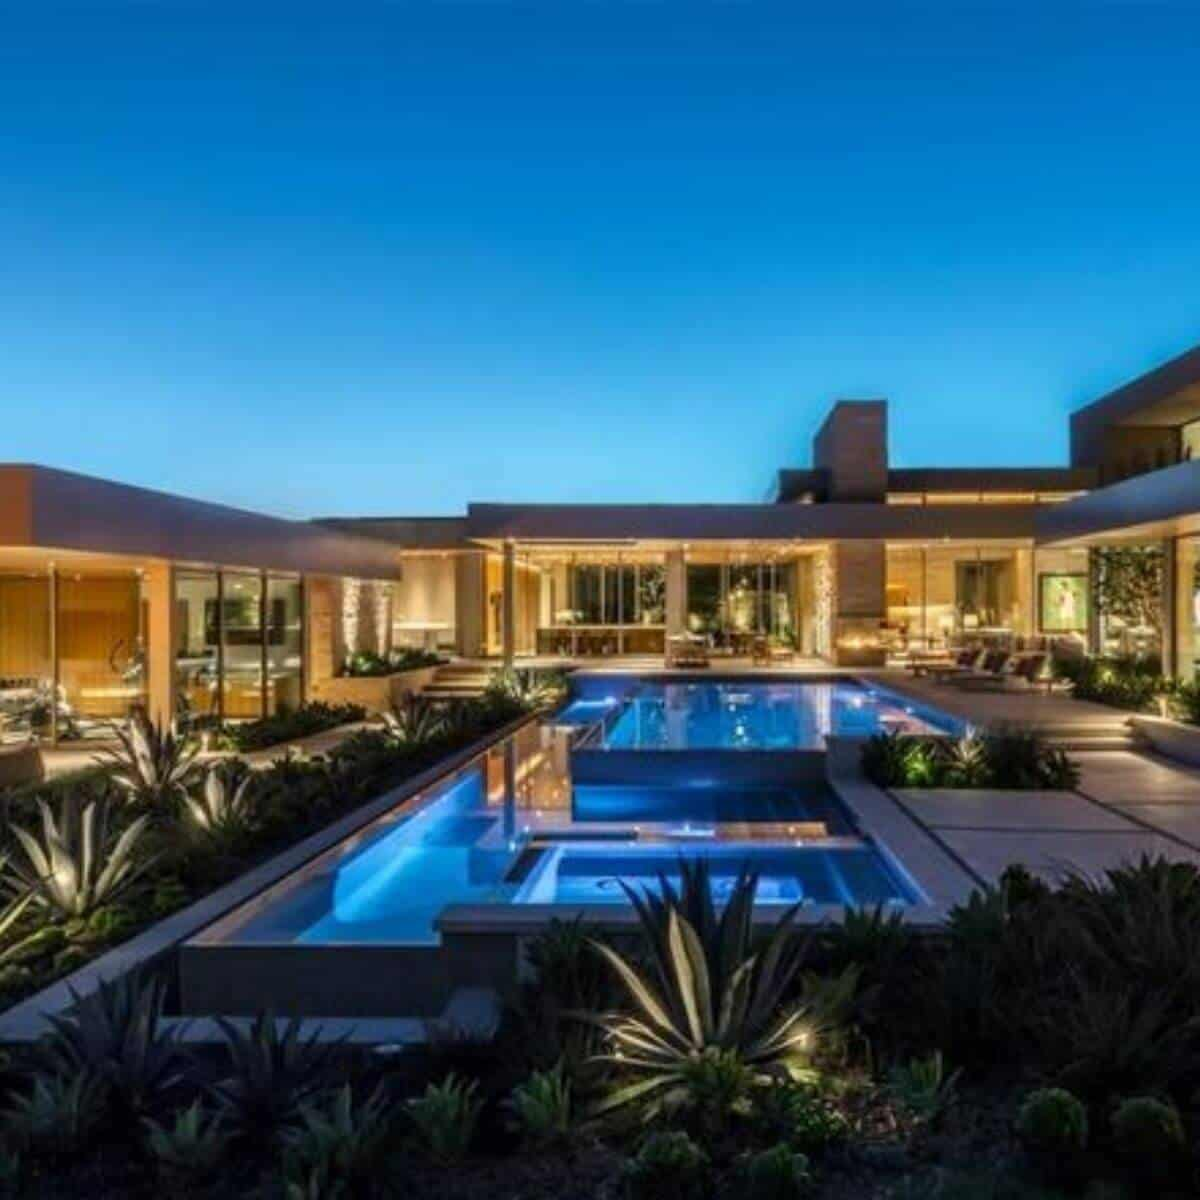 A pool in front of a modern mansion at dusk.